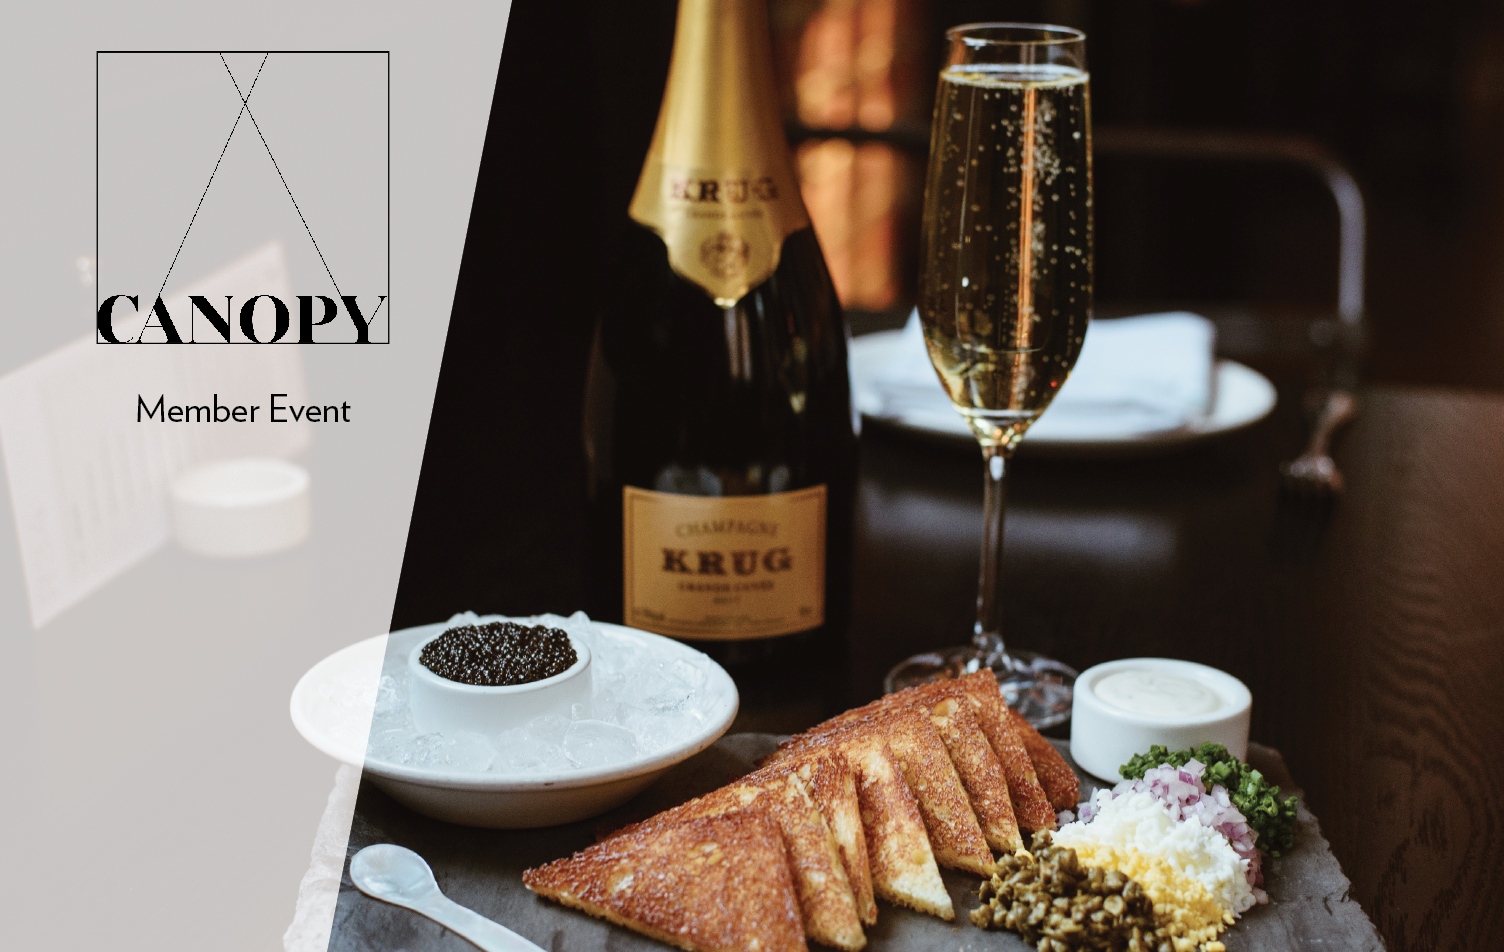 MEMBER APPRECIATION: KRUG CHAMPAGNE & CAVIAR